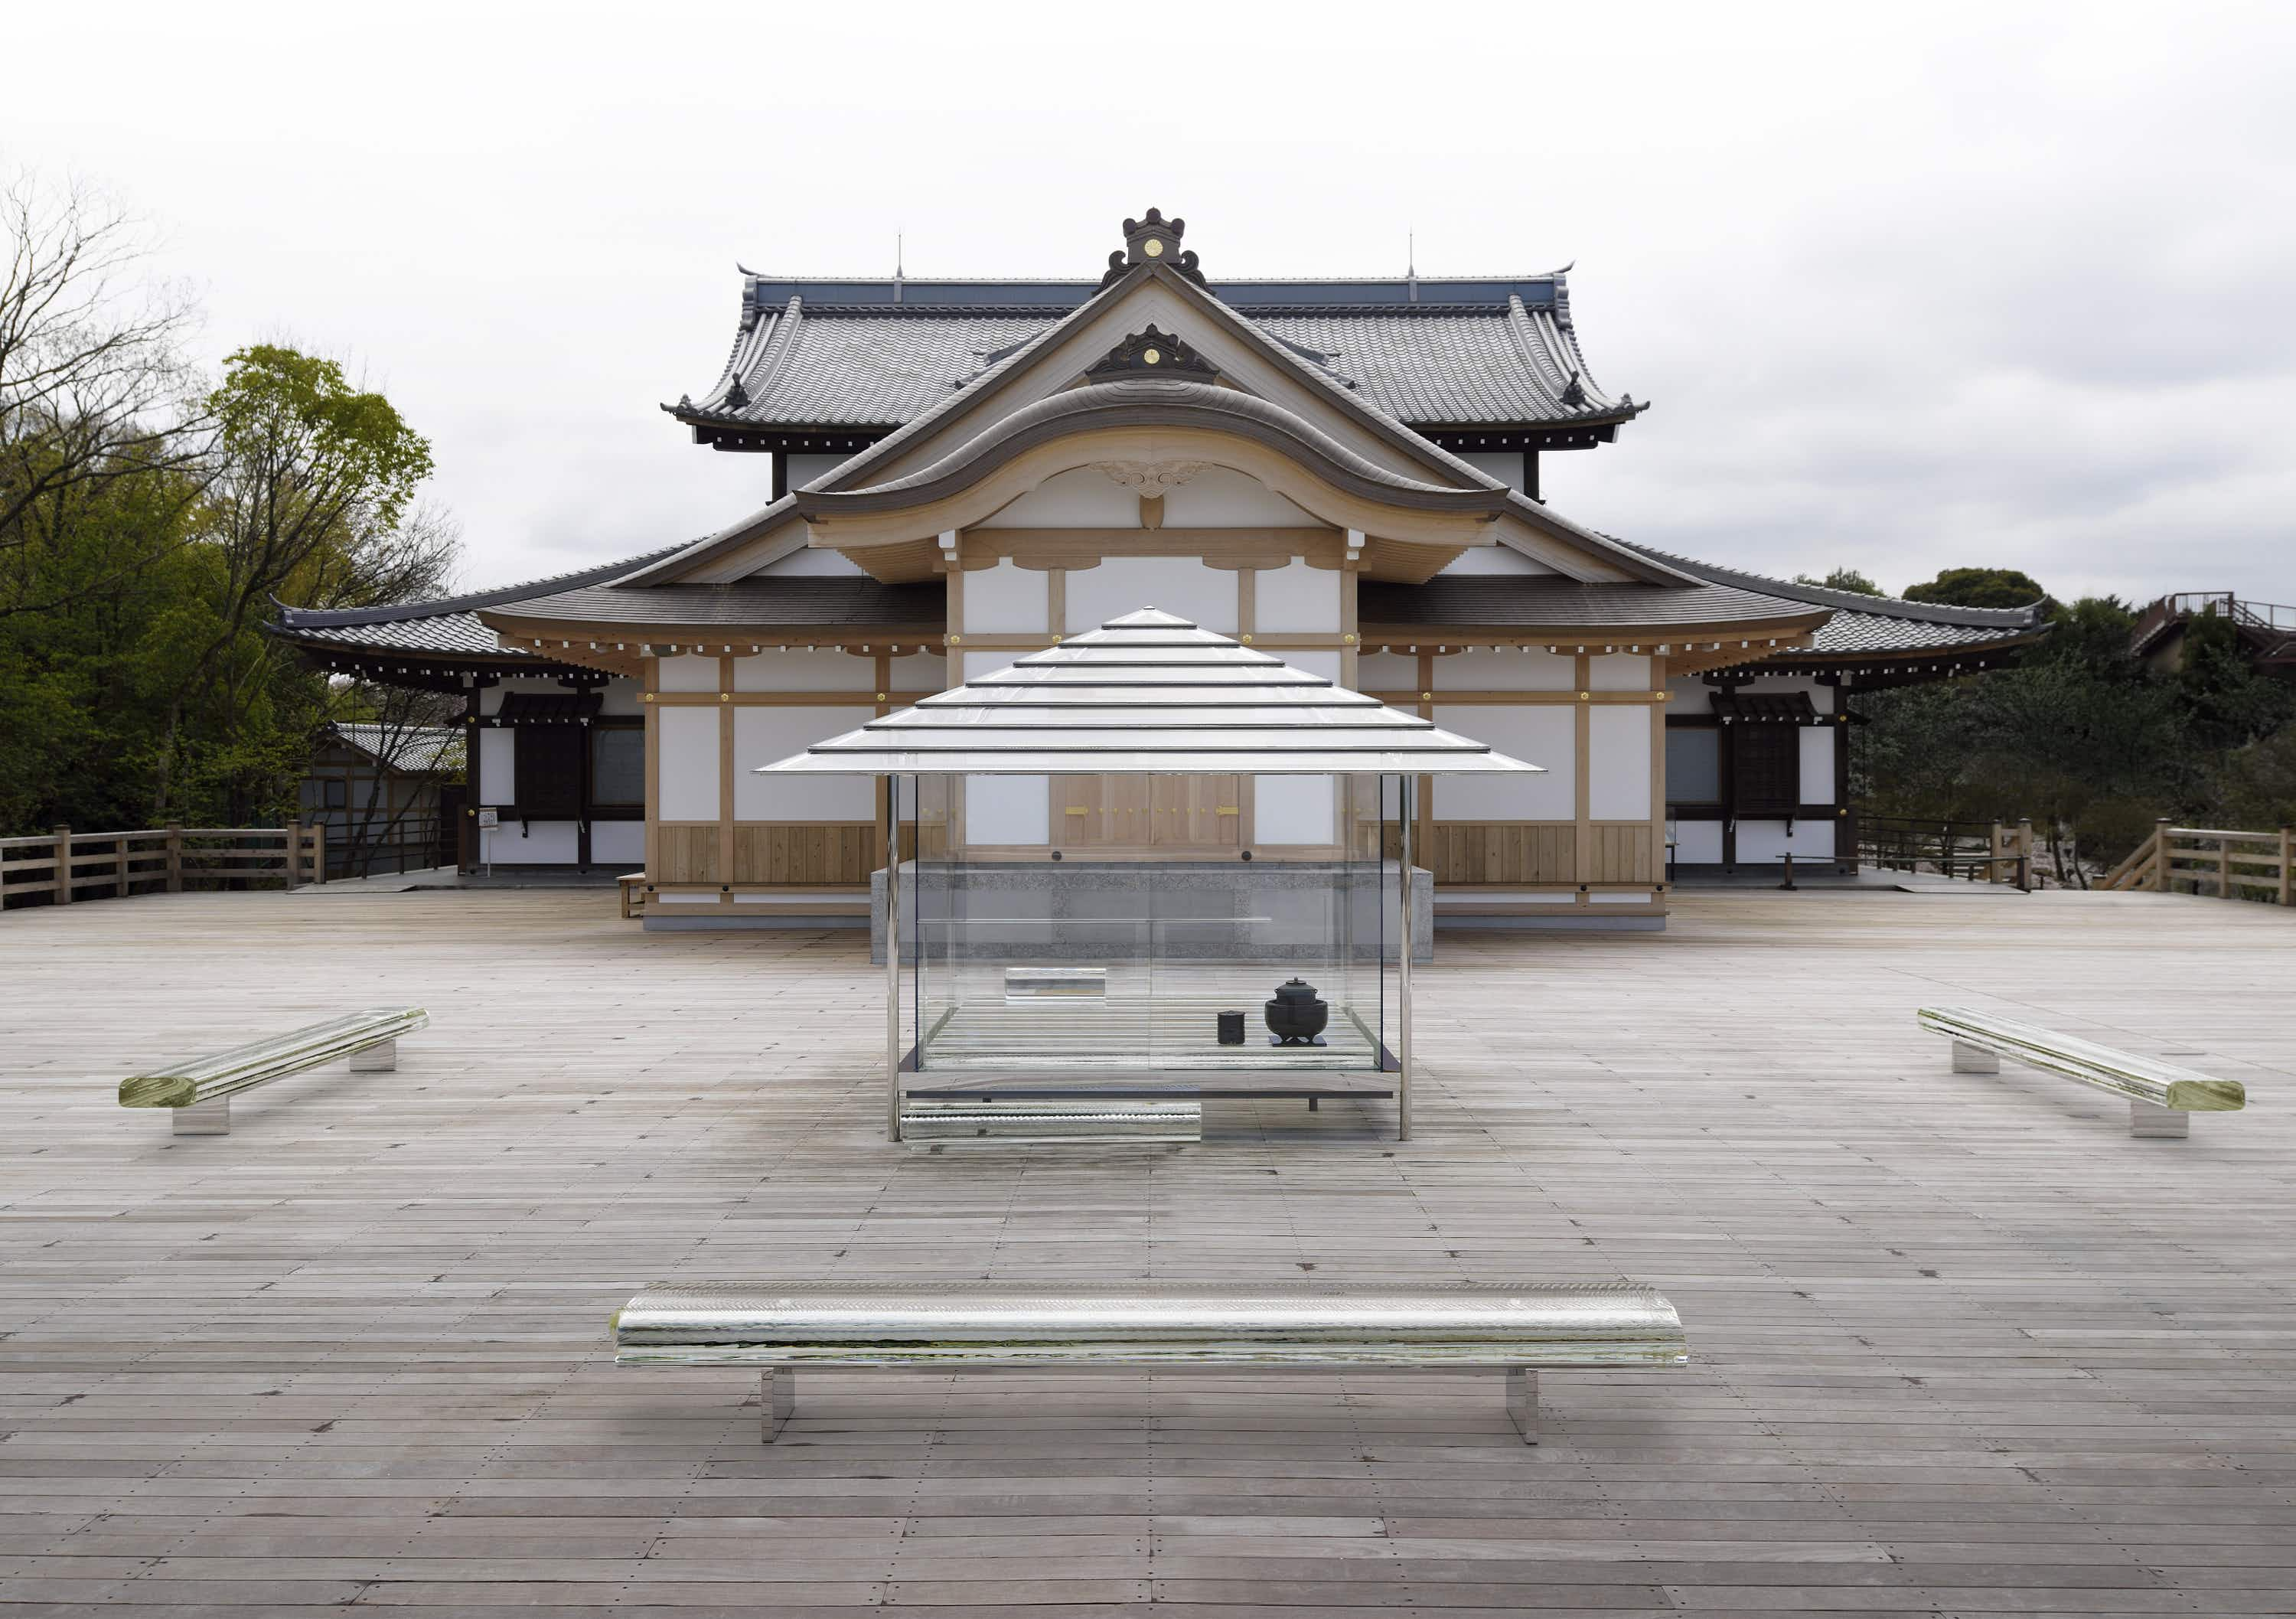 This glass Japanese tea house is travelling the world sharing the art of the tradition